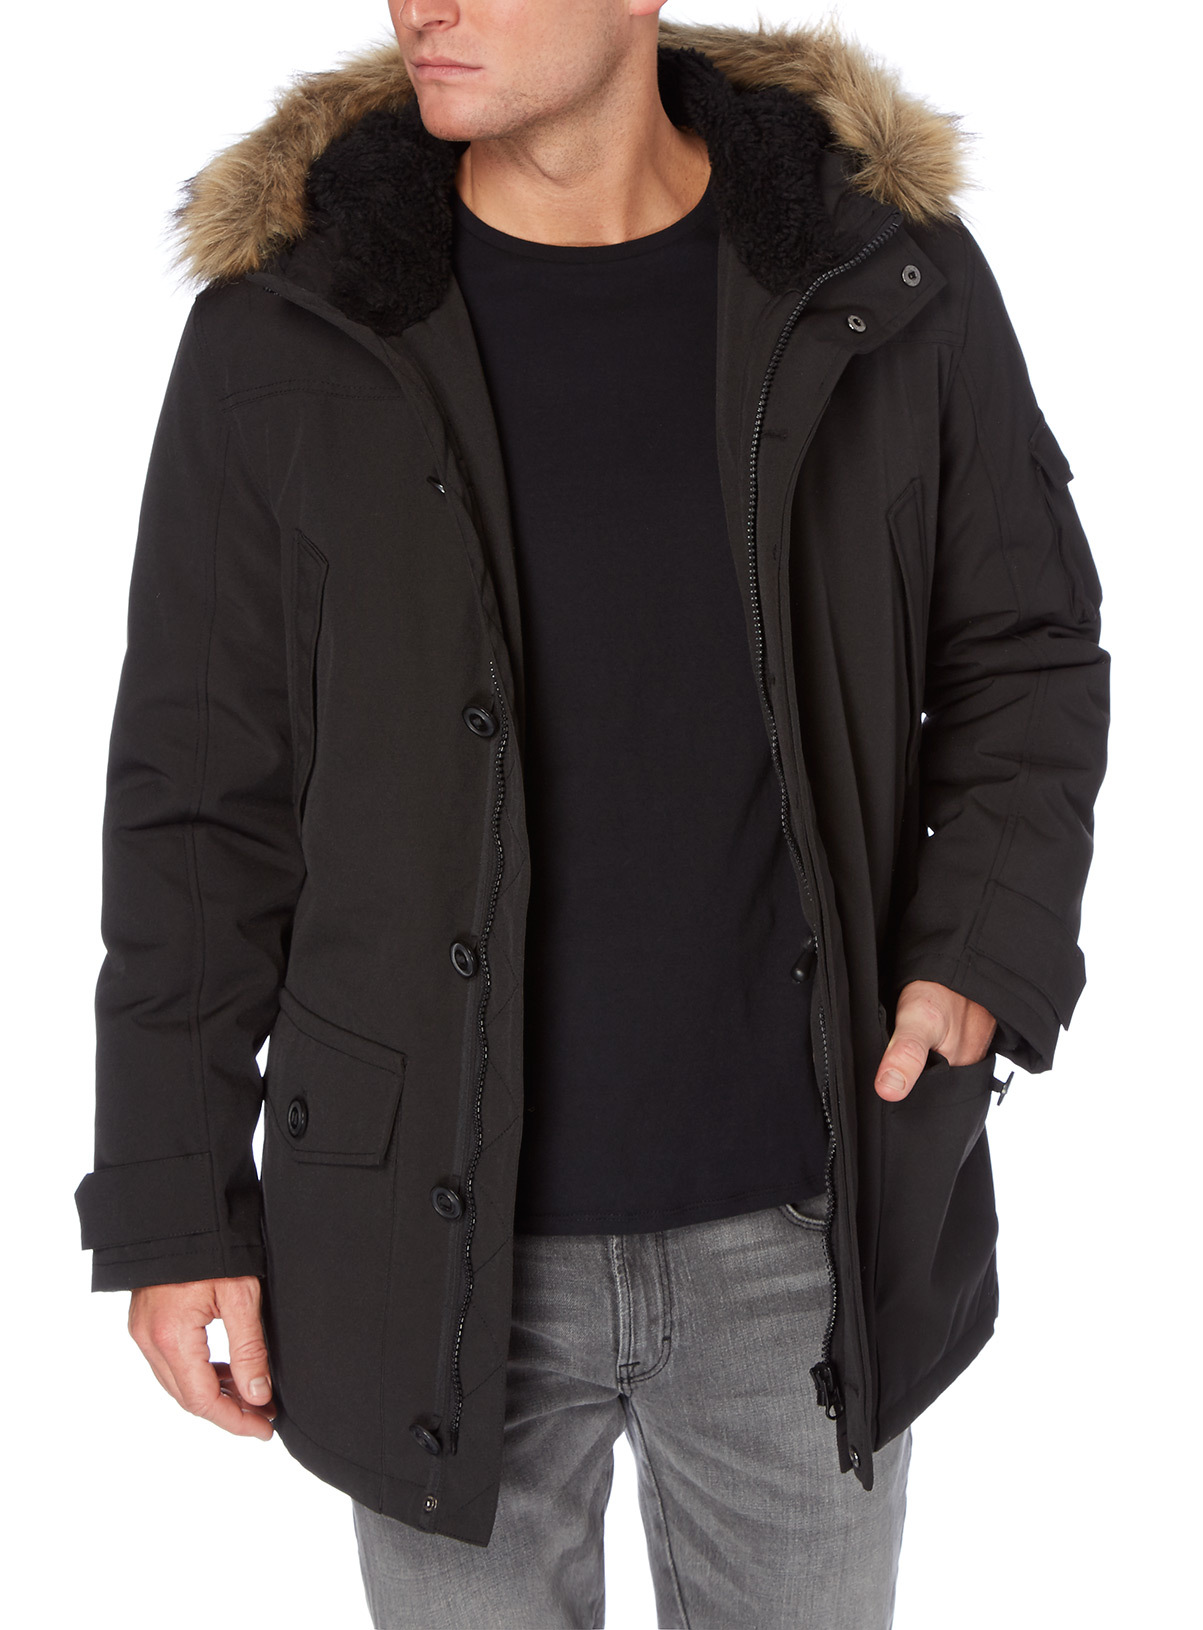 Mens Black Parka Coat | Tu clothing